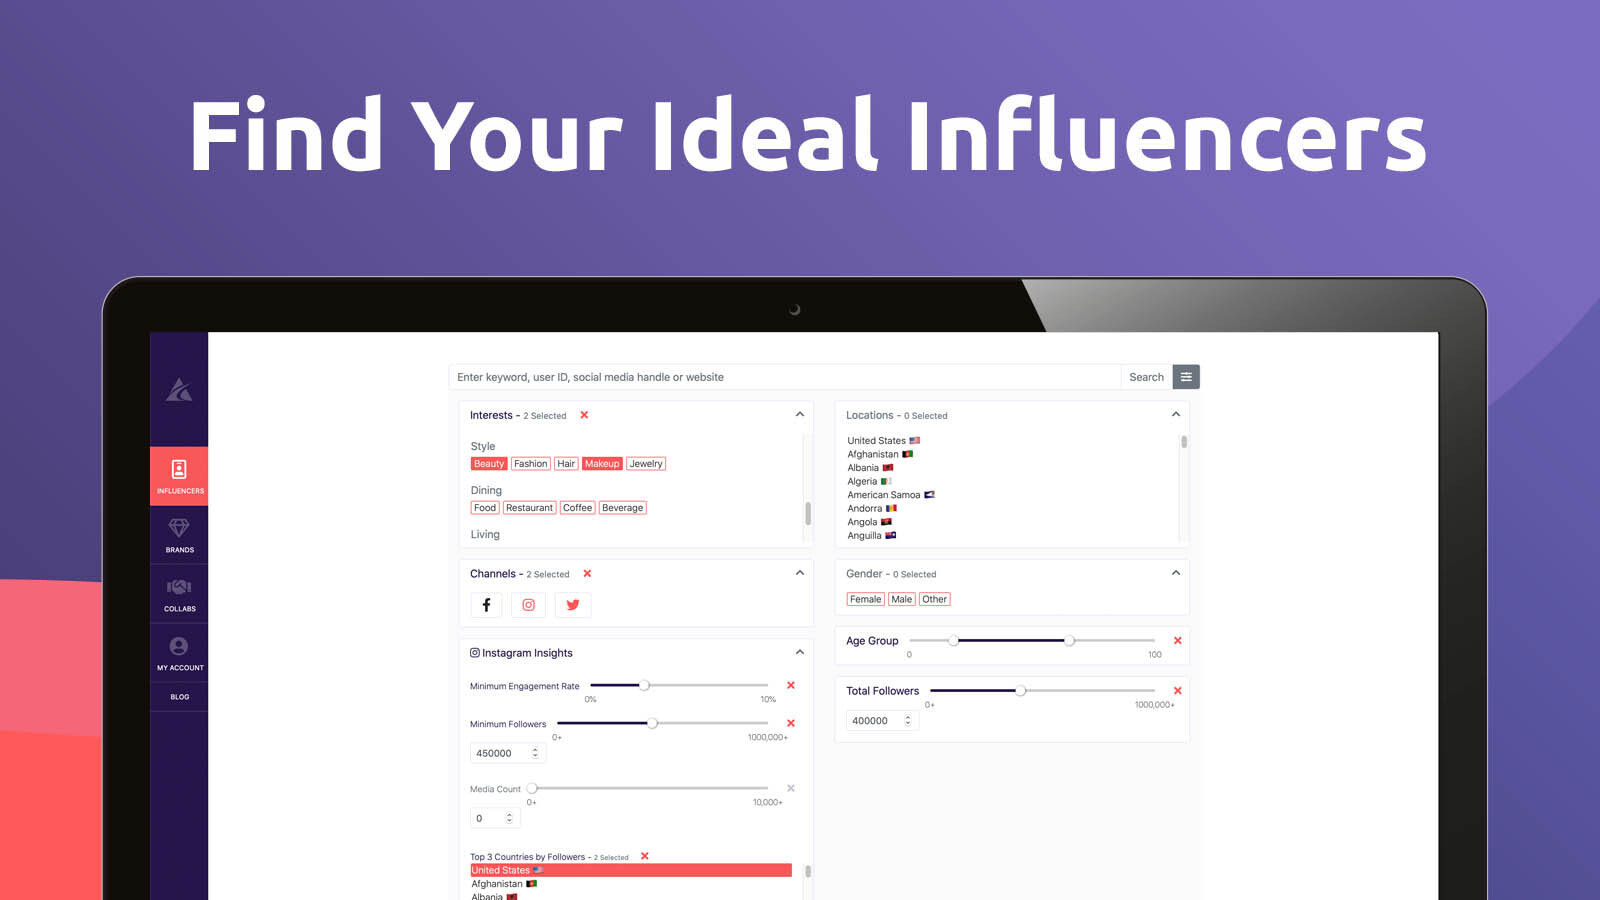 Search for the ideal Collab for your followers and influence!